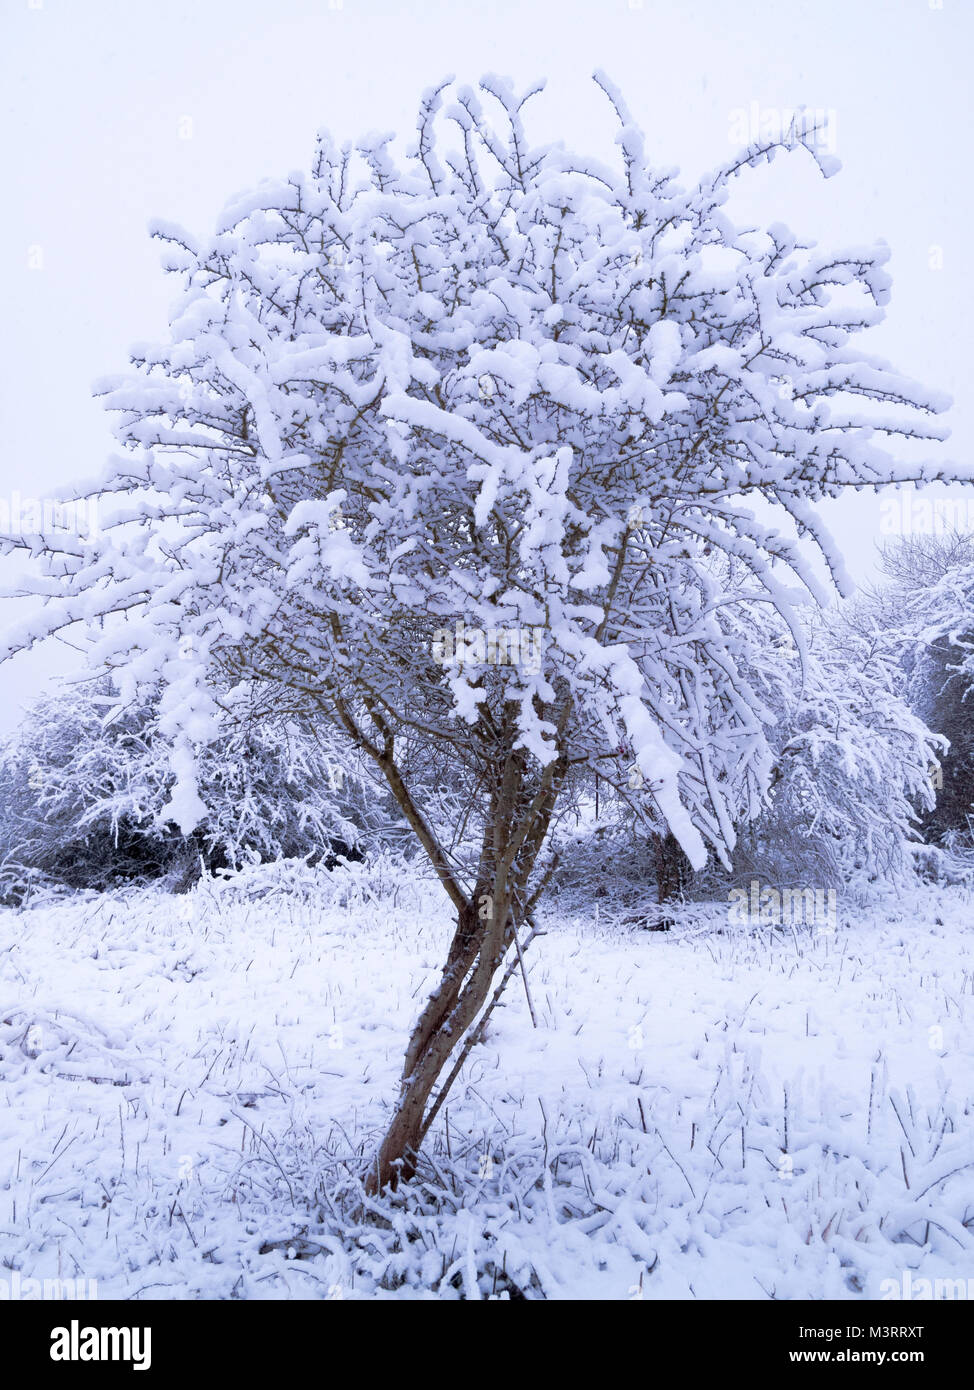 Snow covered hawthorn tree - Stock Image